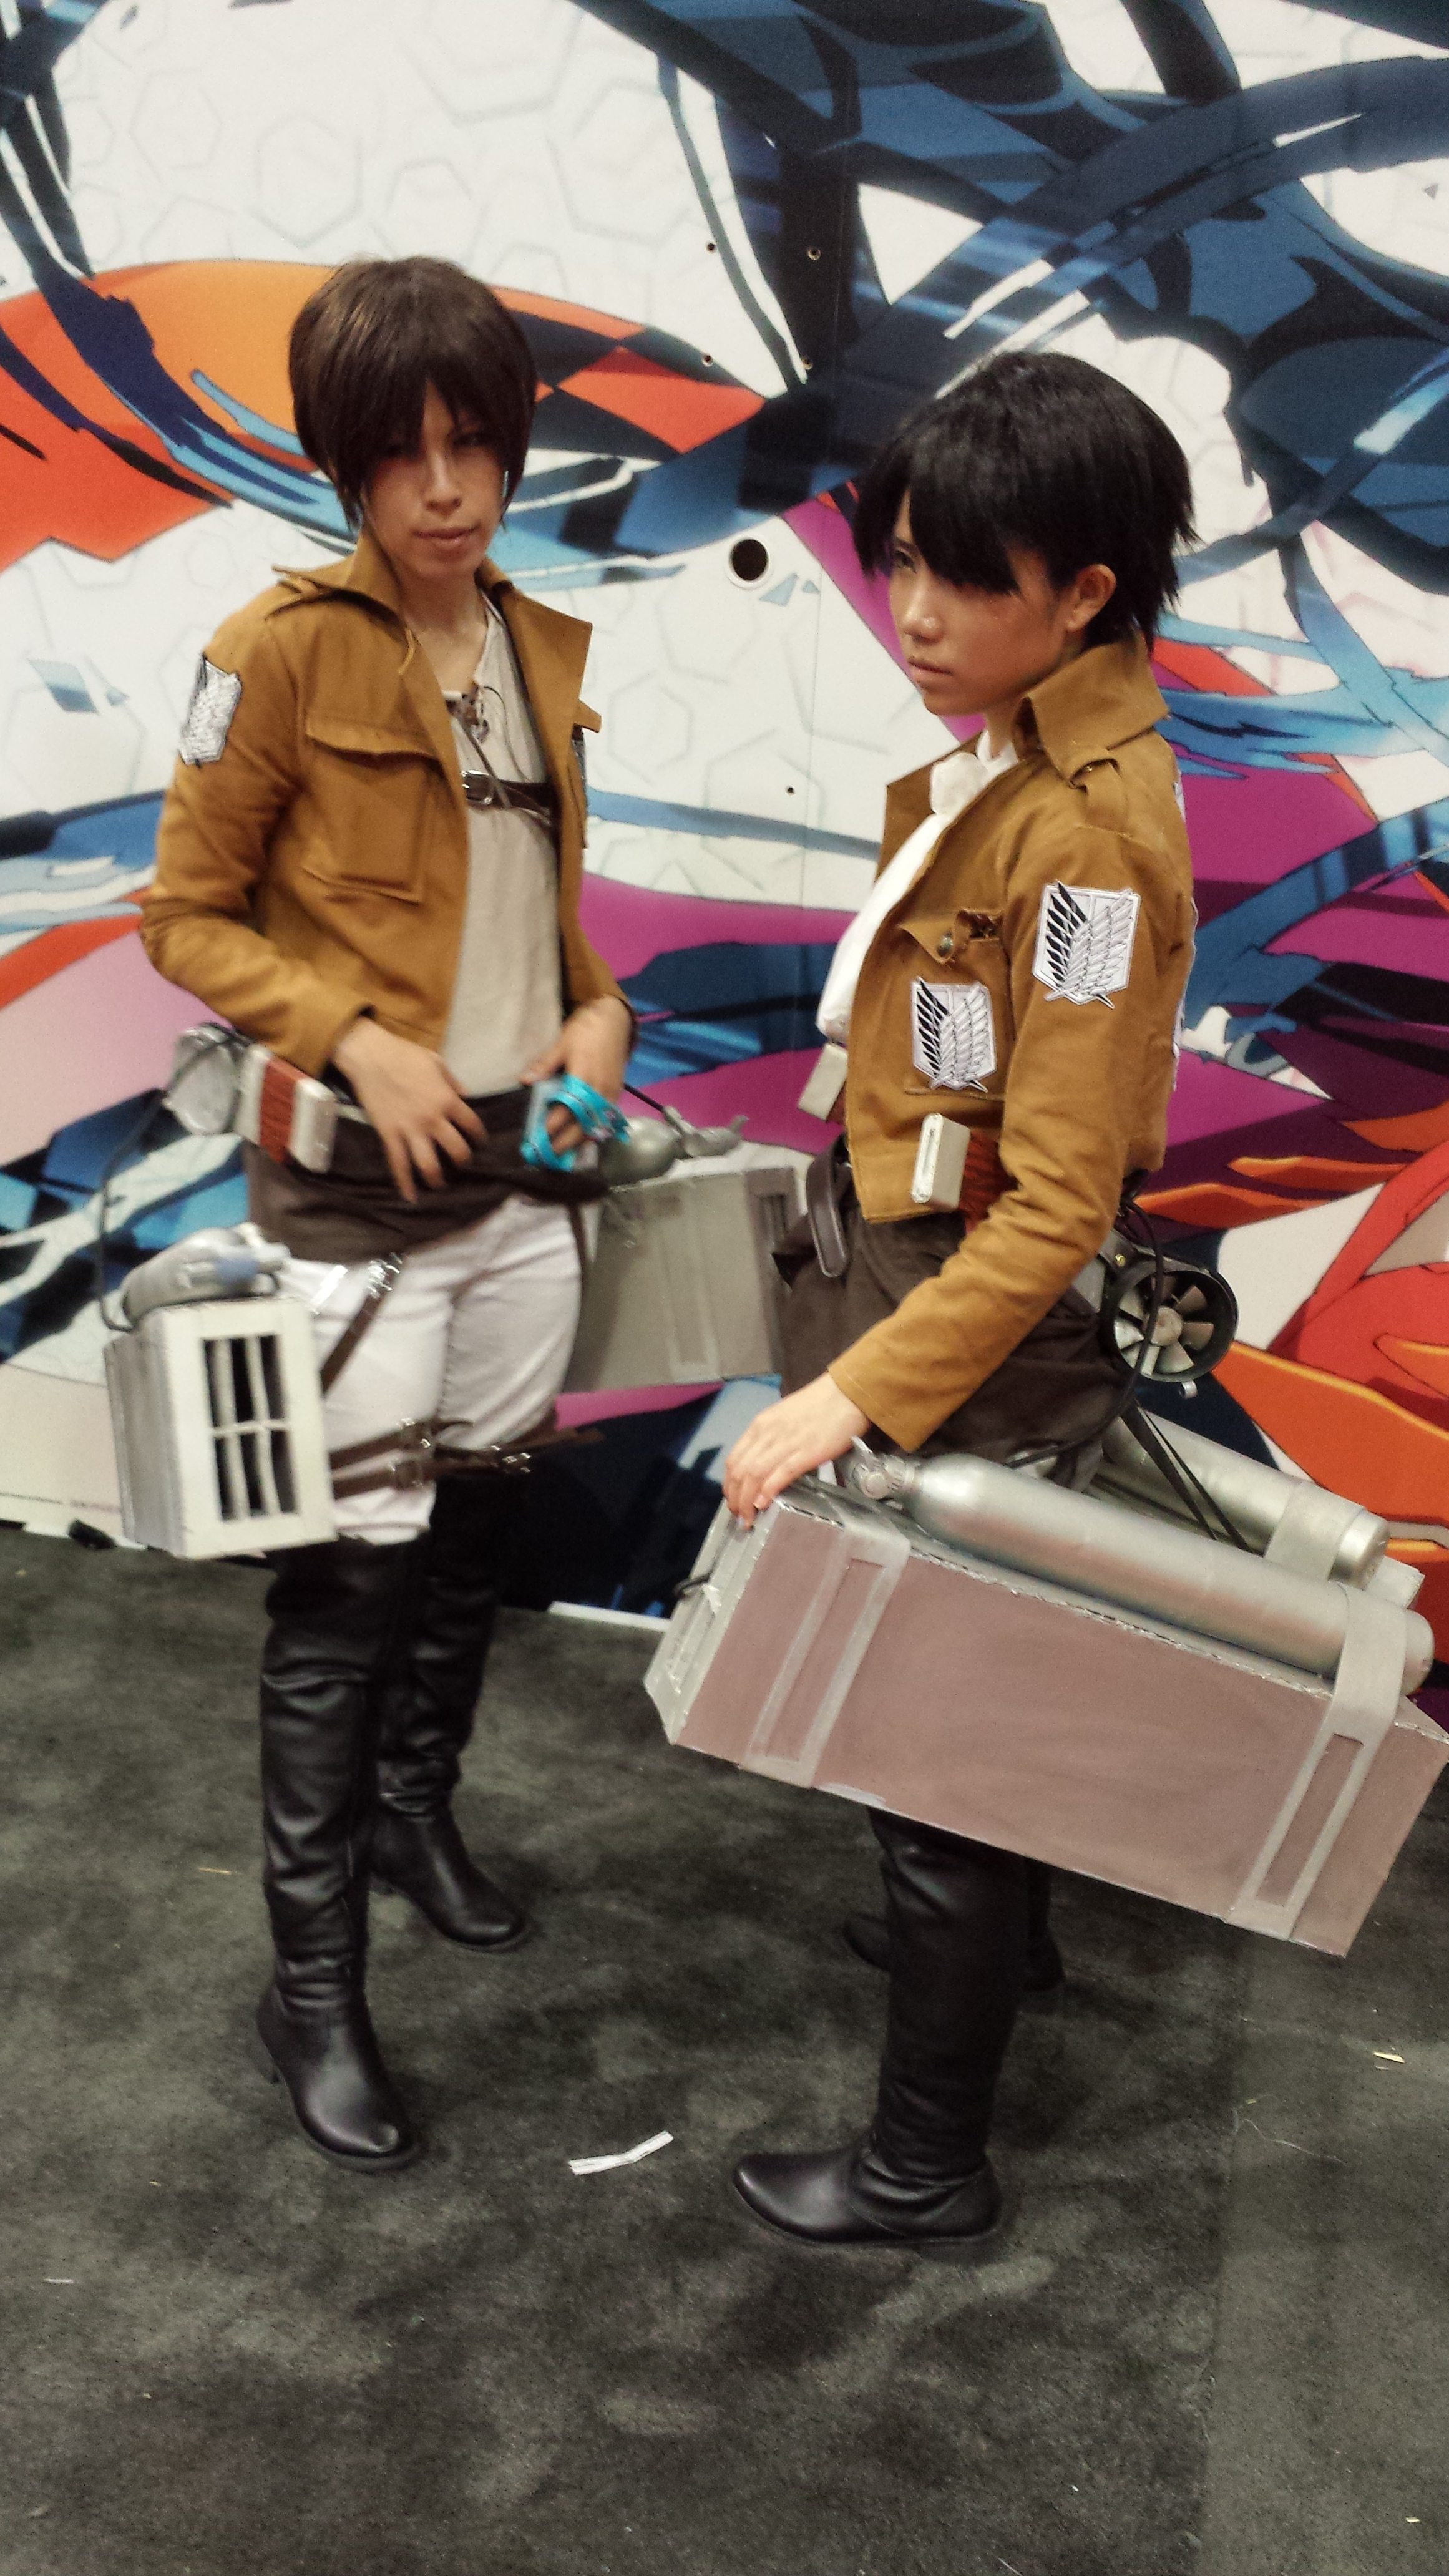 AnimeExpo 2013 - Keeping us safe from the Titans